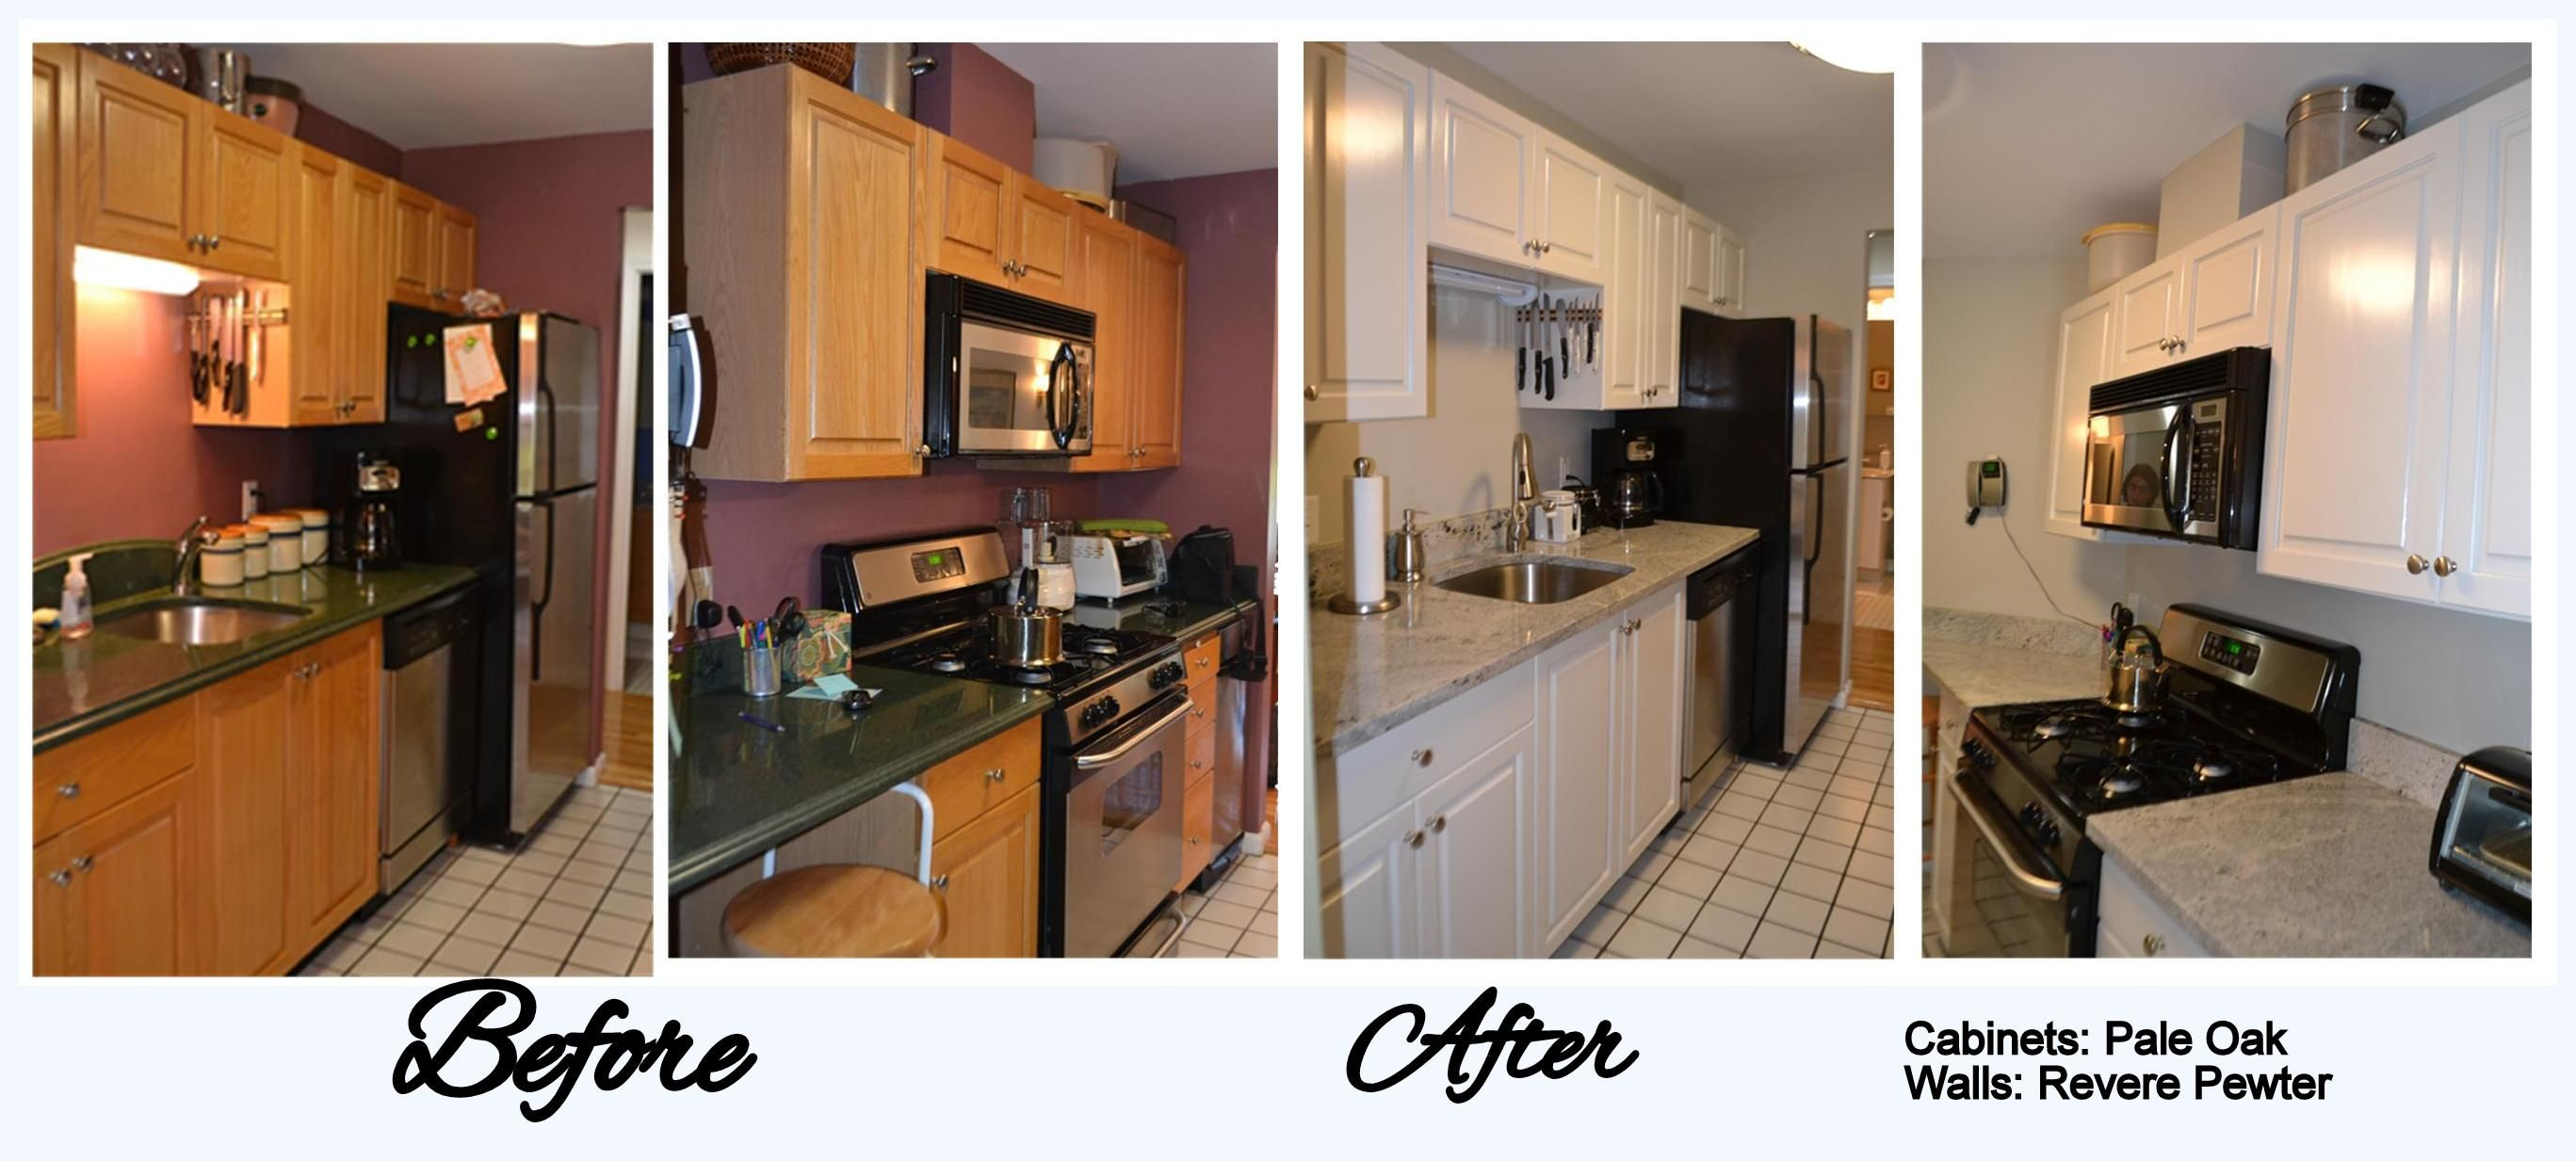 Kitchen Cabinet Refacing Before And After Photos Google Search Kitchen Cabinet Styles Reface Cabinet Doors Refacing Kitchen Cabinets